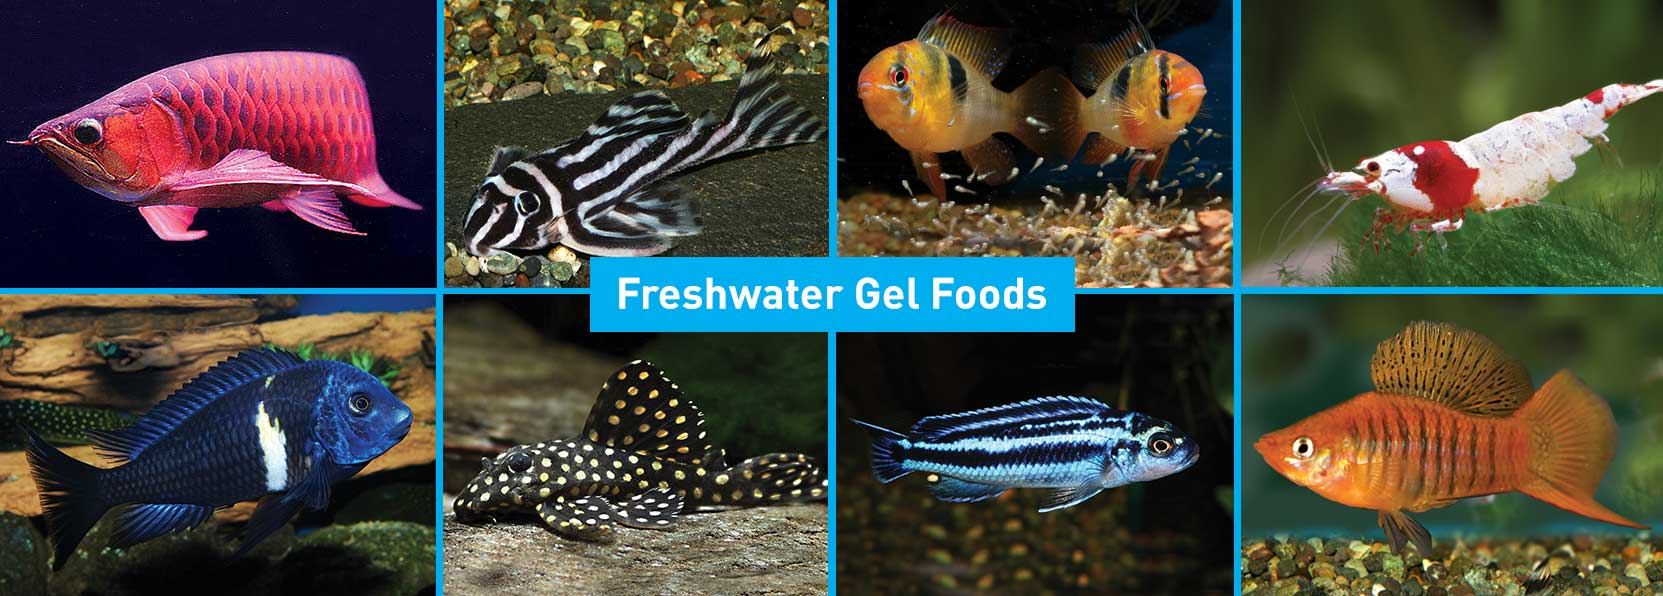 Fish-Products-banner-3